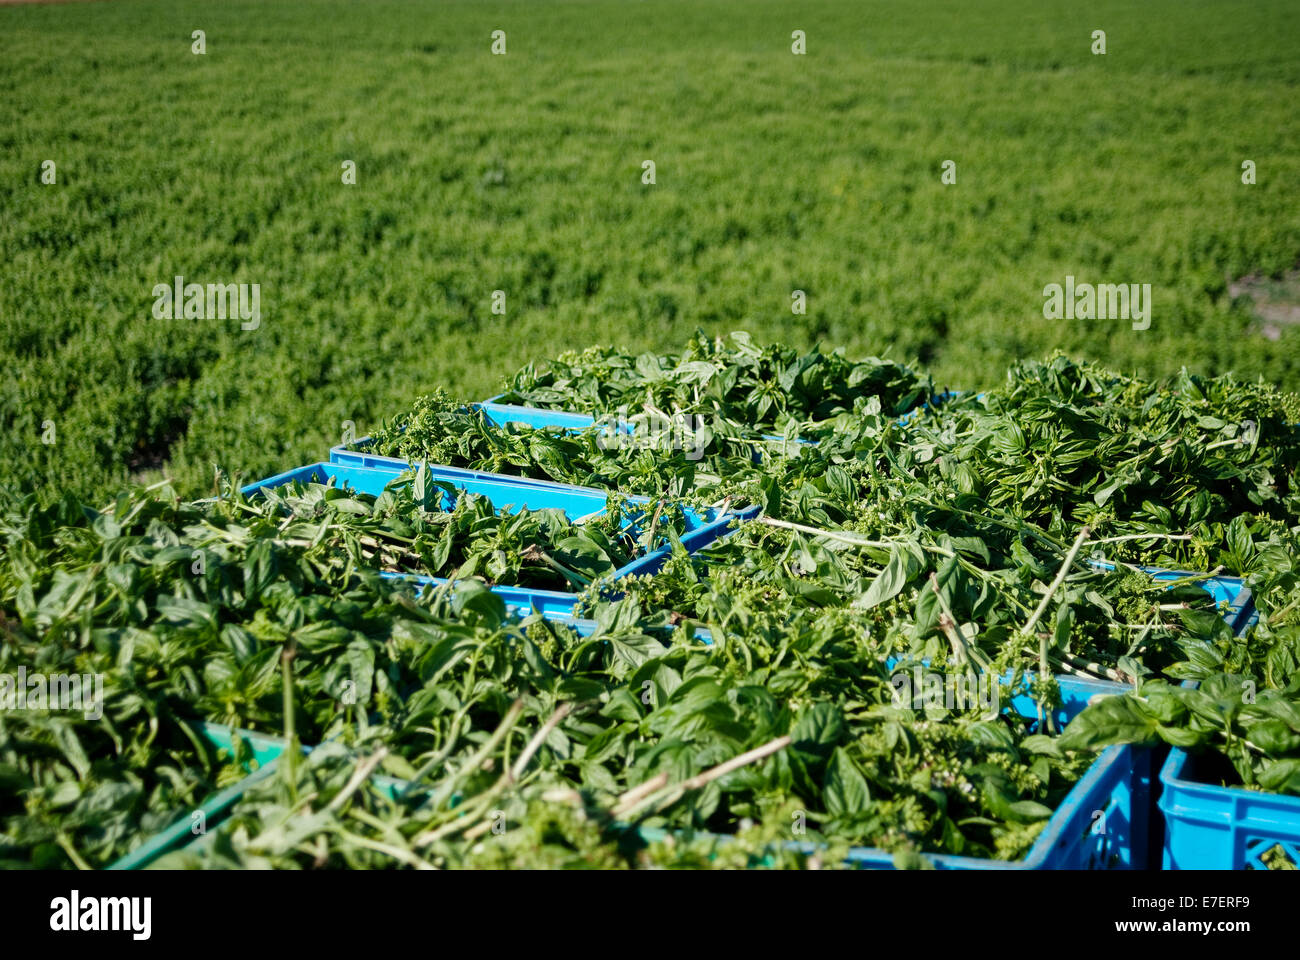 Agriculture; Farm; Harvesting; Organic; Organic farming; Organic food; Basil; baskets; Green; Rural scen; Nature; - Stock Image